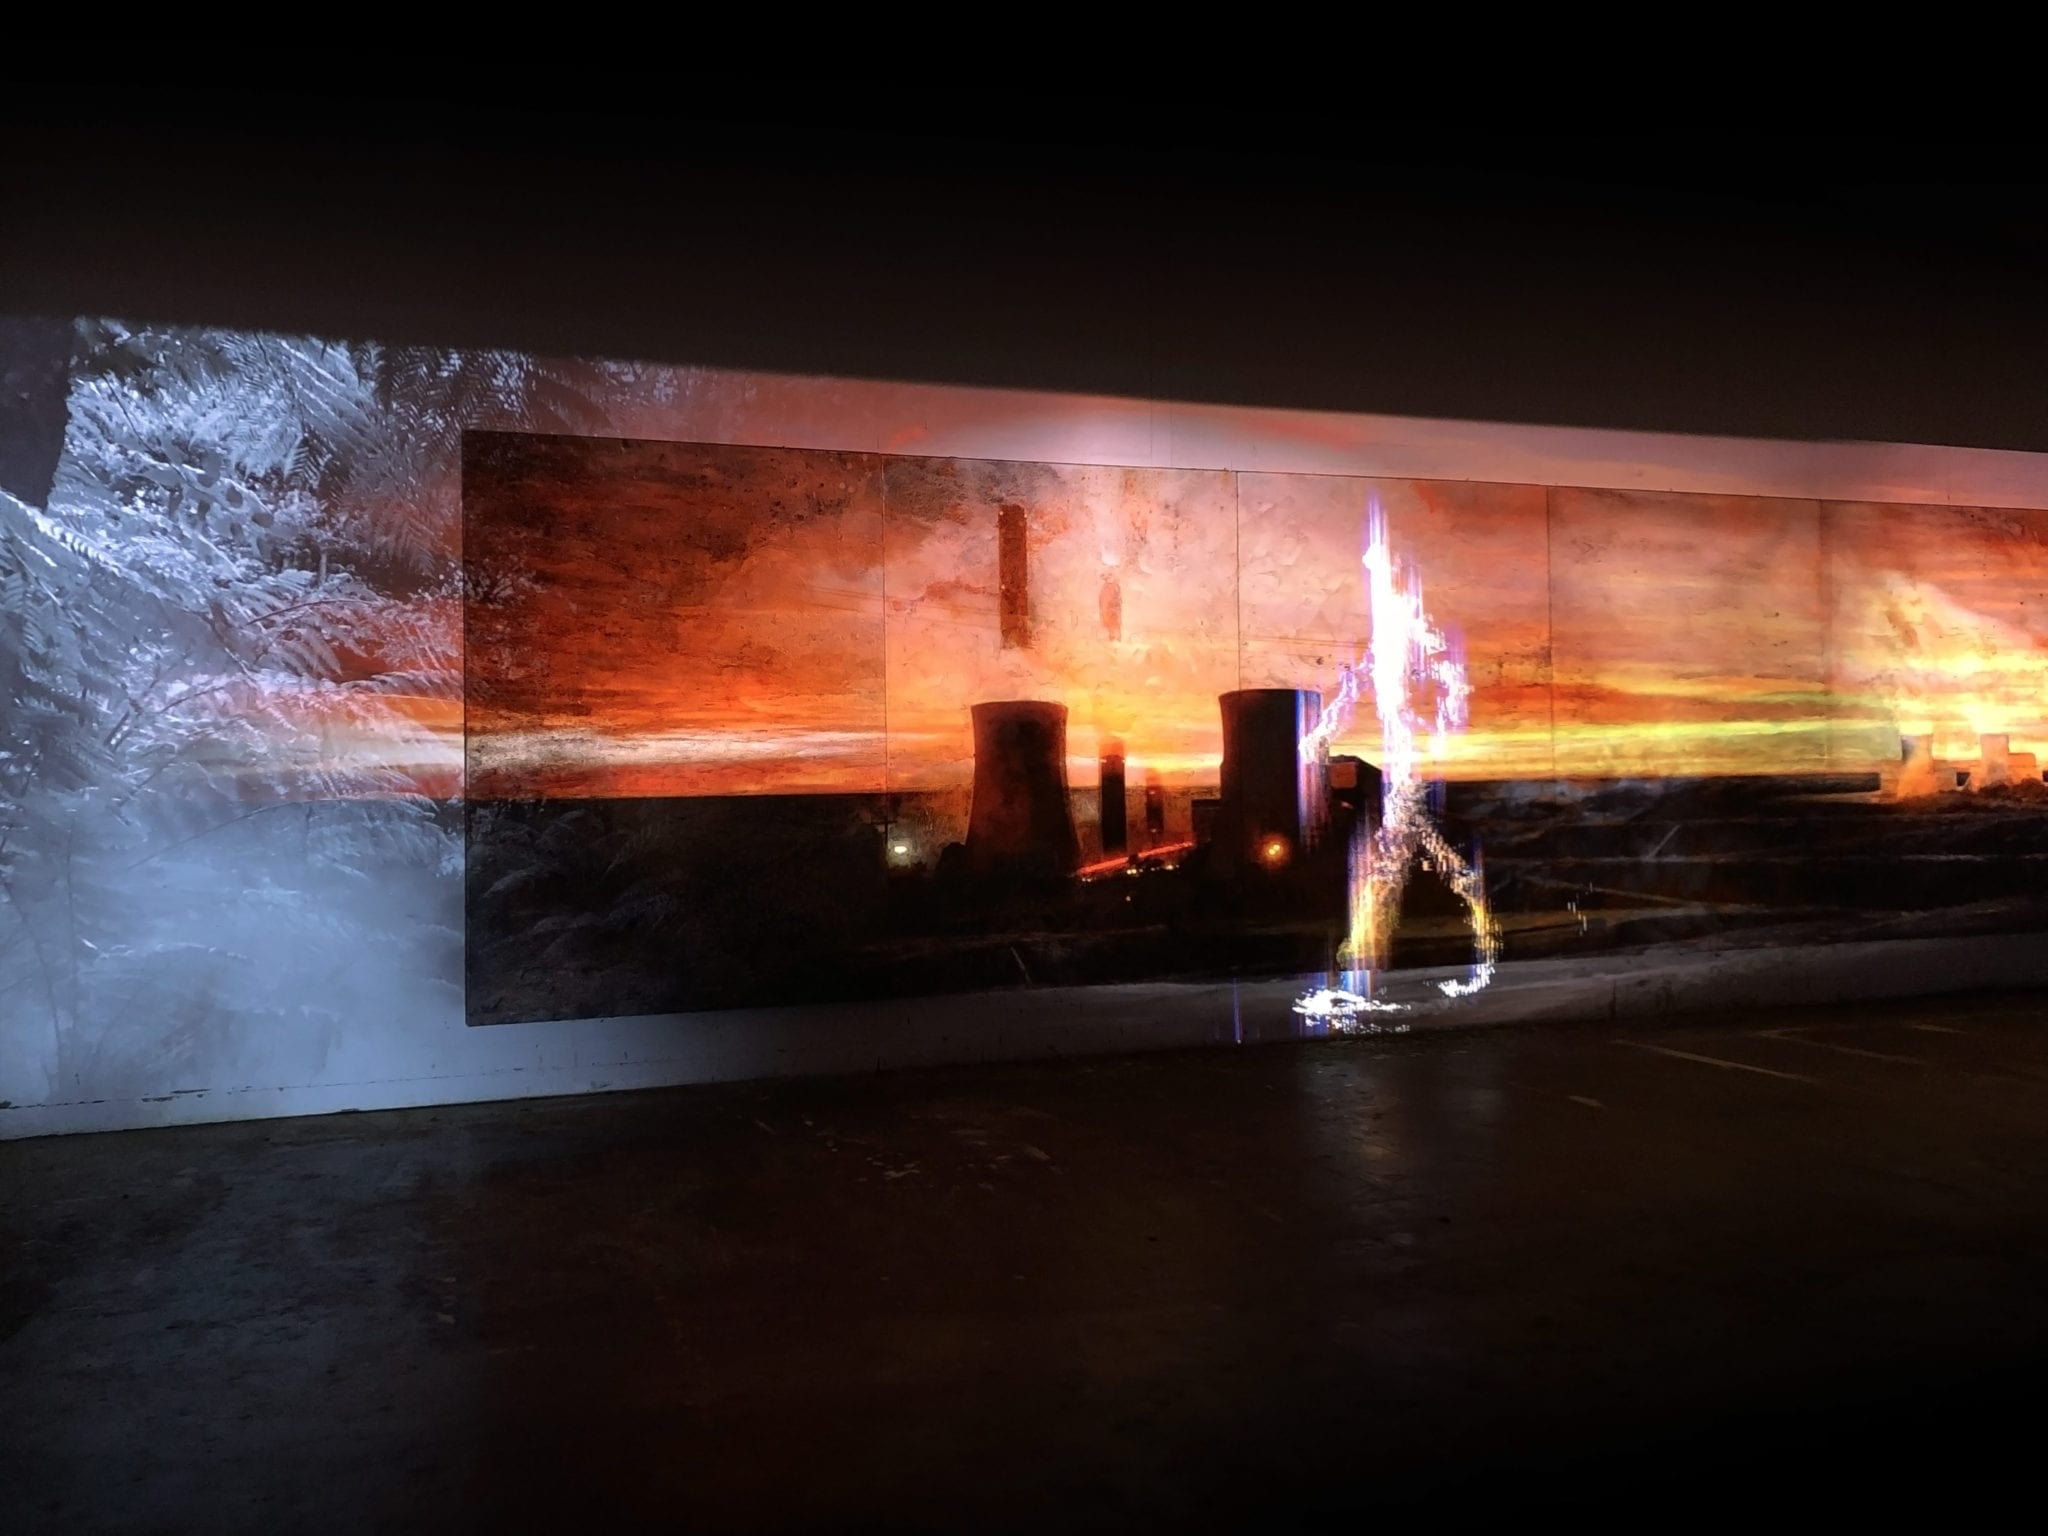 Alexander Boynes, Mandy Martin, Tristen Parr, Rewriting the Score, 2019, Acrylic, oil, pigments on linen, 3 Channel 4K video with stereo sound, 230cm x 1150cm. Image courtesy of the artists and Australian Galleries.